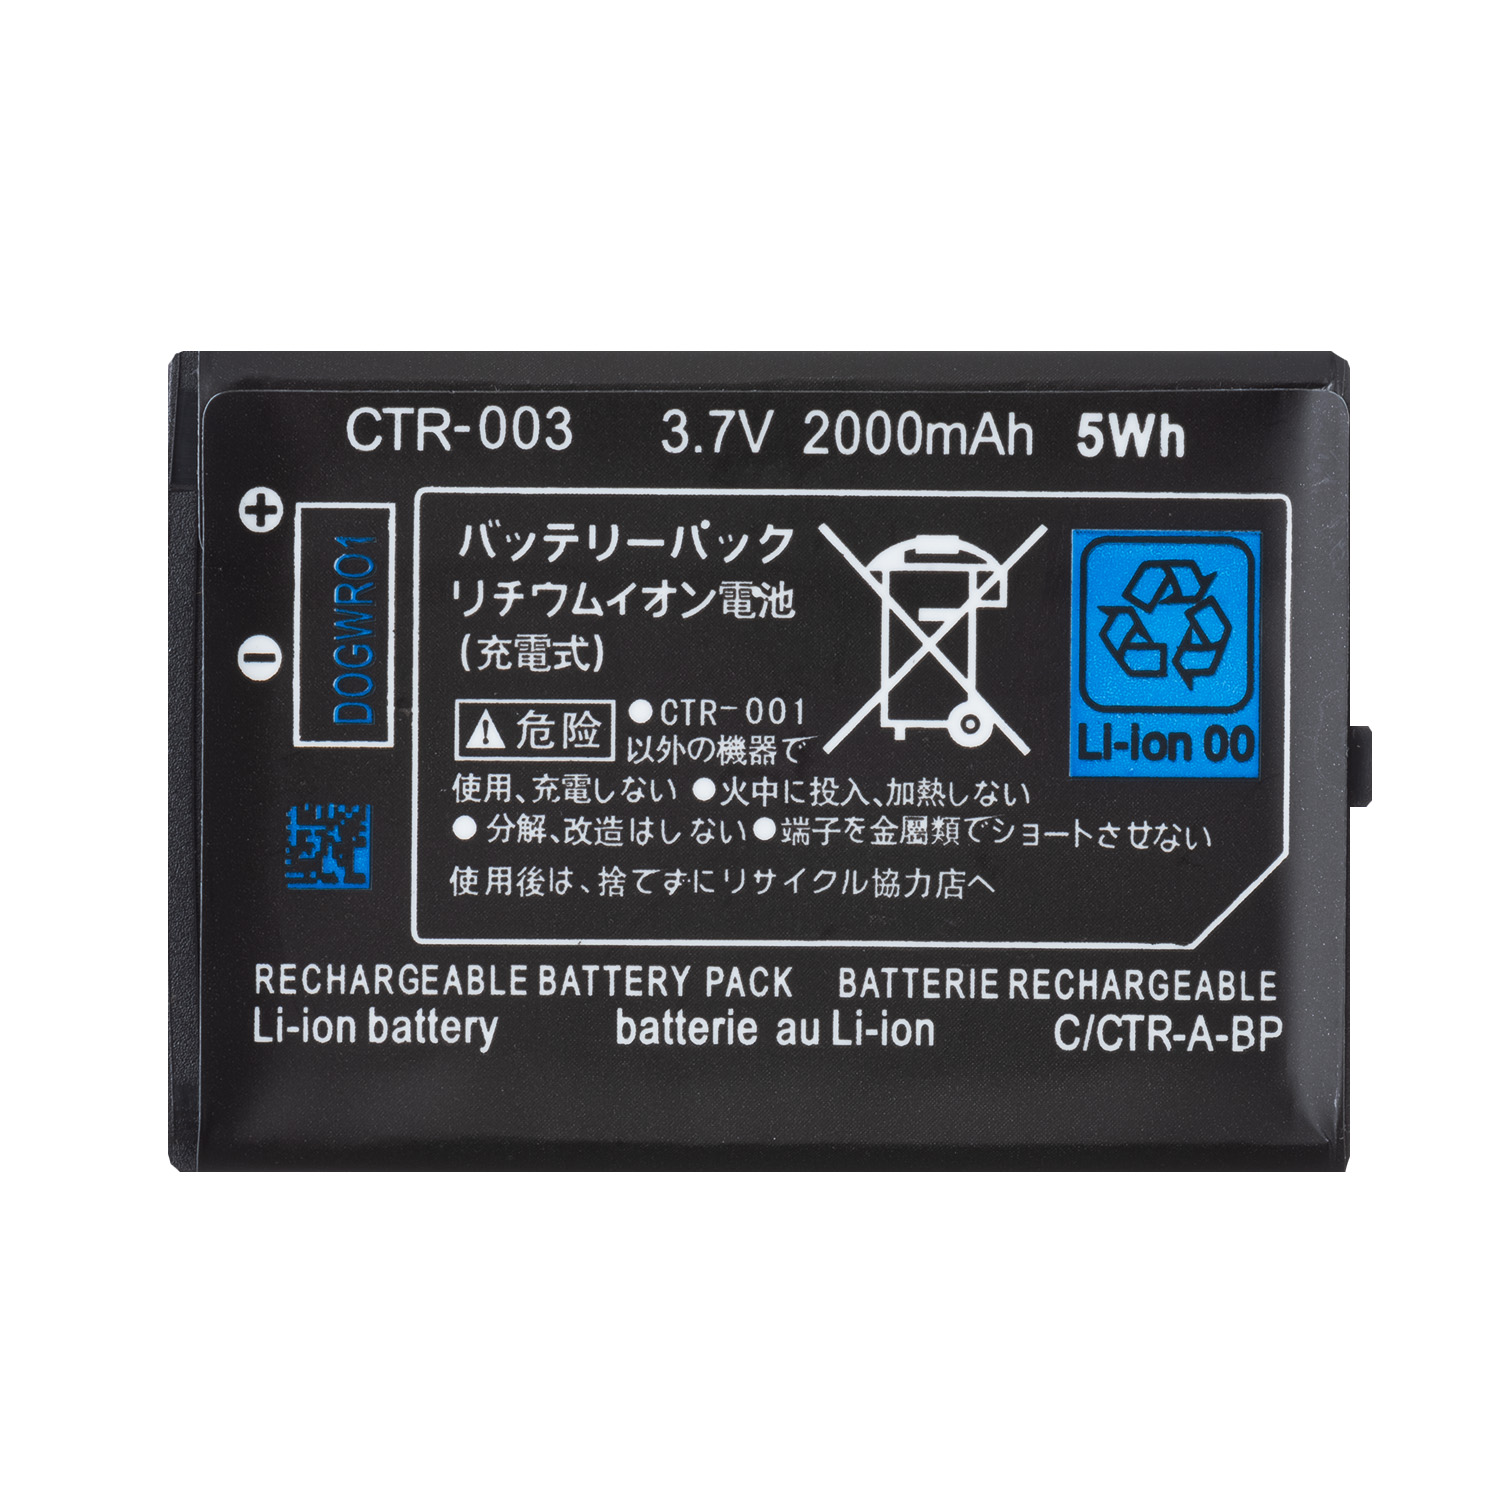 OSTENT 2000mAh 3.7V Rechargeable Lithium-ion <font><b>Battery</b></font> + Tool Kit <font><b>Pack</b></font> for Nintendo <font><b>3DS</b></font> image